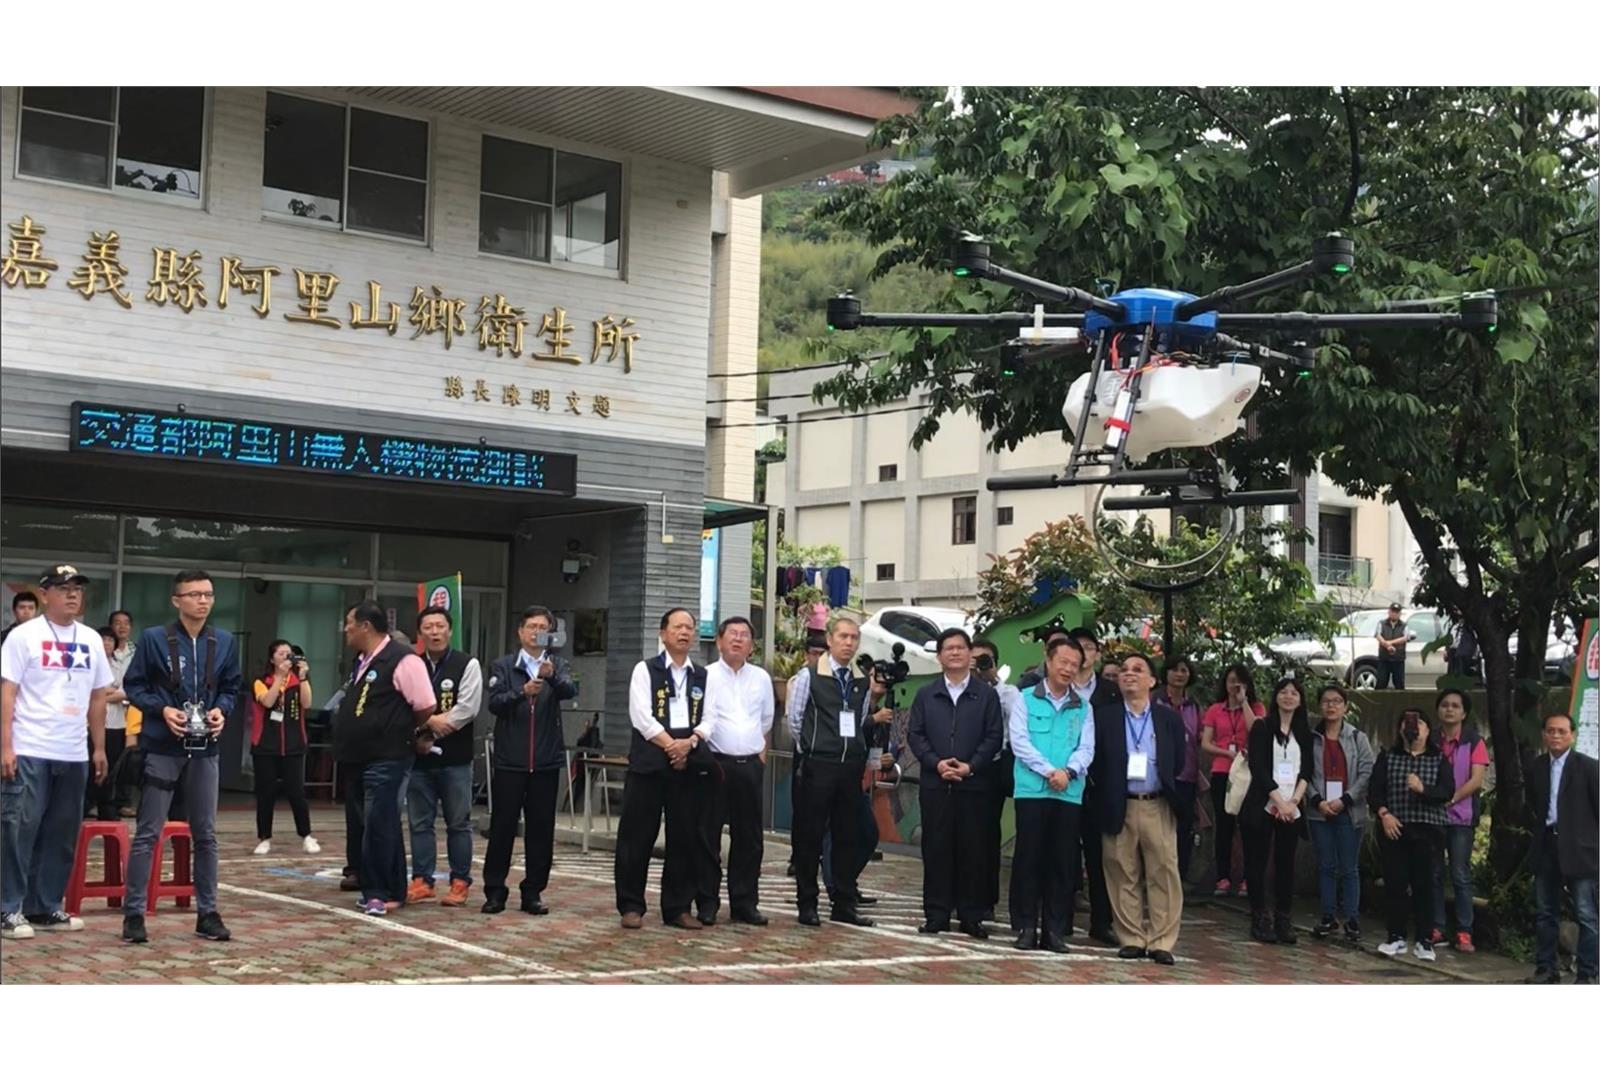 Dawen, 嘉义县阿里山乡卫生所香林联合卫生室, Unmanned aerial vehicle, Taipei, Mail, Aerial photography, Yahoo!奇摩, Ministry of Transportation and Communications, Alishan, Chiayi, 交通部中華郵政公司, vehicle, Helicopter, Rotorcraft, Vehicle, Event, Aircraft, Tourism, Helicopter rotor